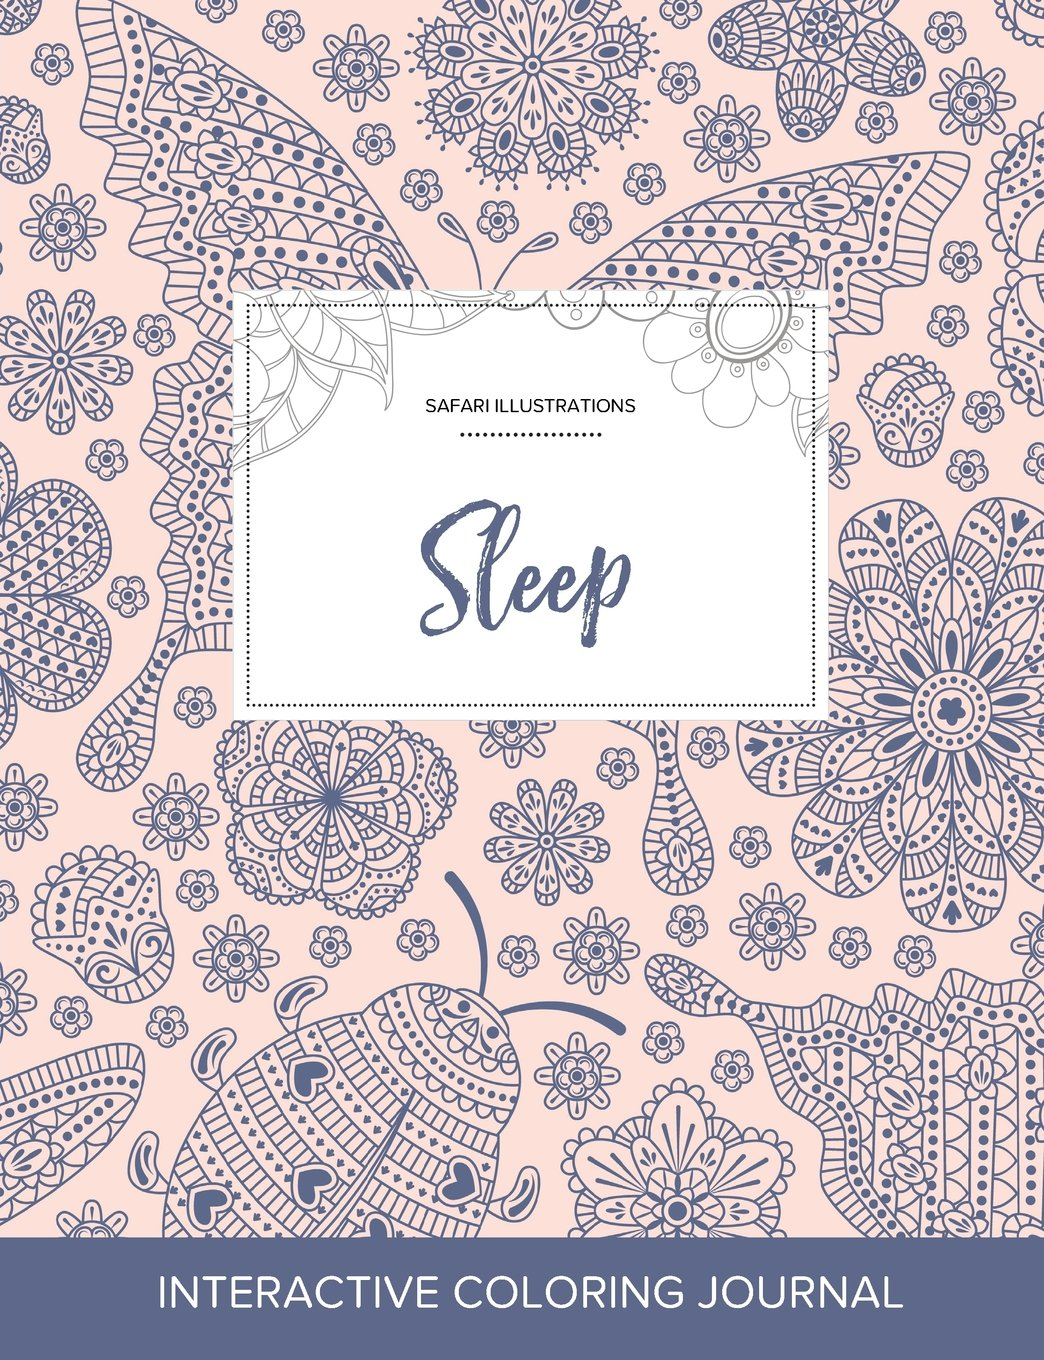 Adult Coloring Journal: Sleep (Safari Illustrations, Ladybug) PDF